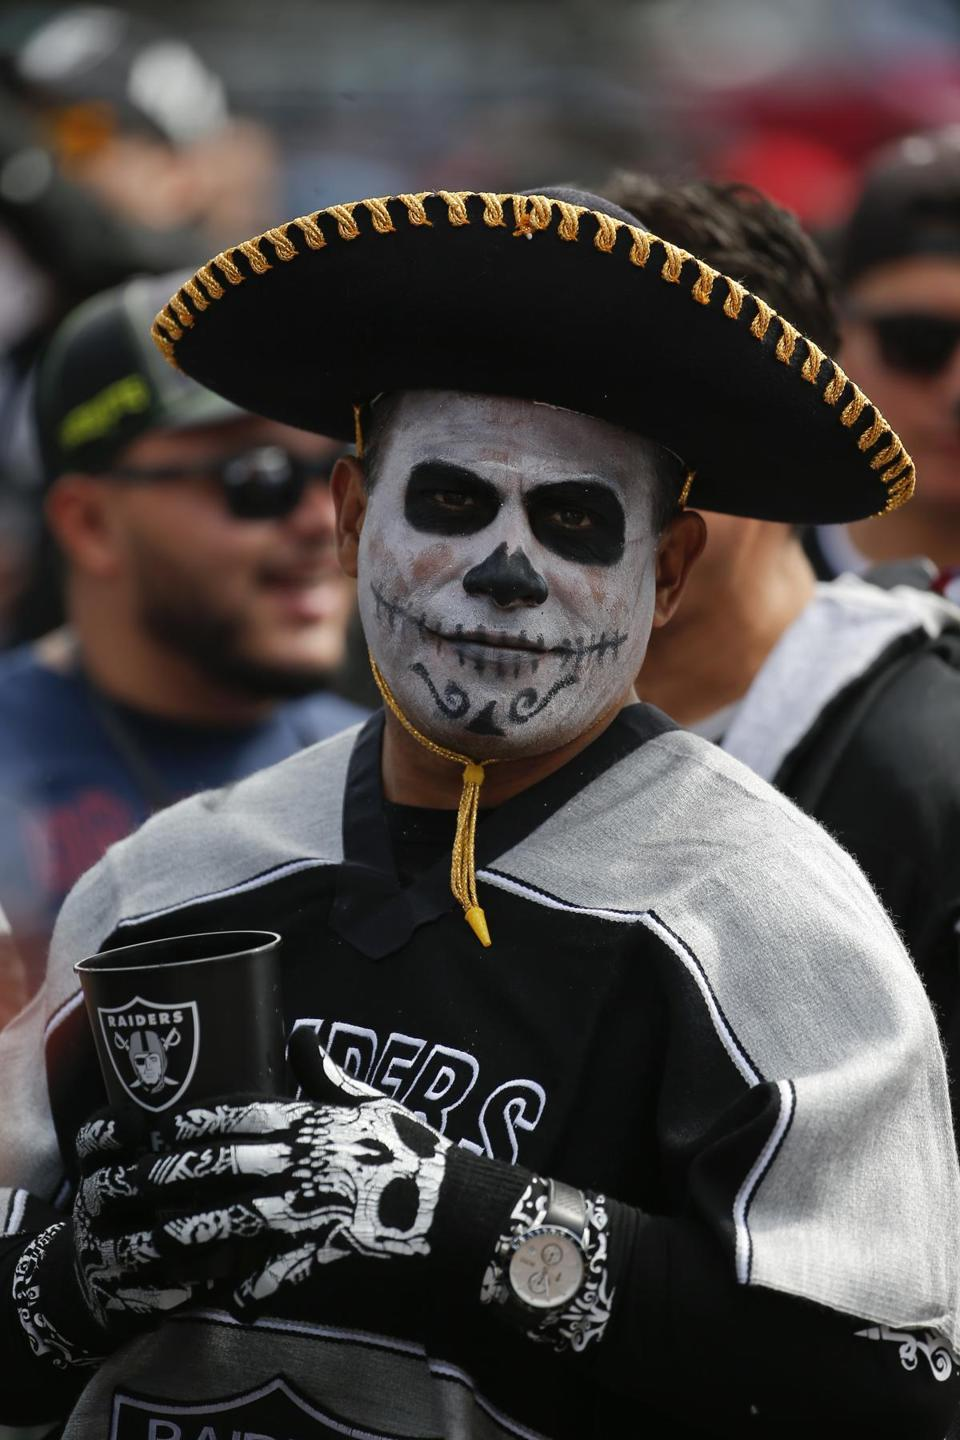 A Raiders fan looks on before the Raiders face the Patriots.